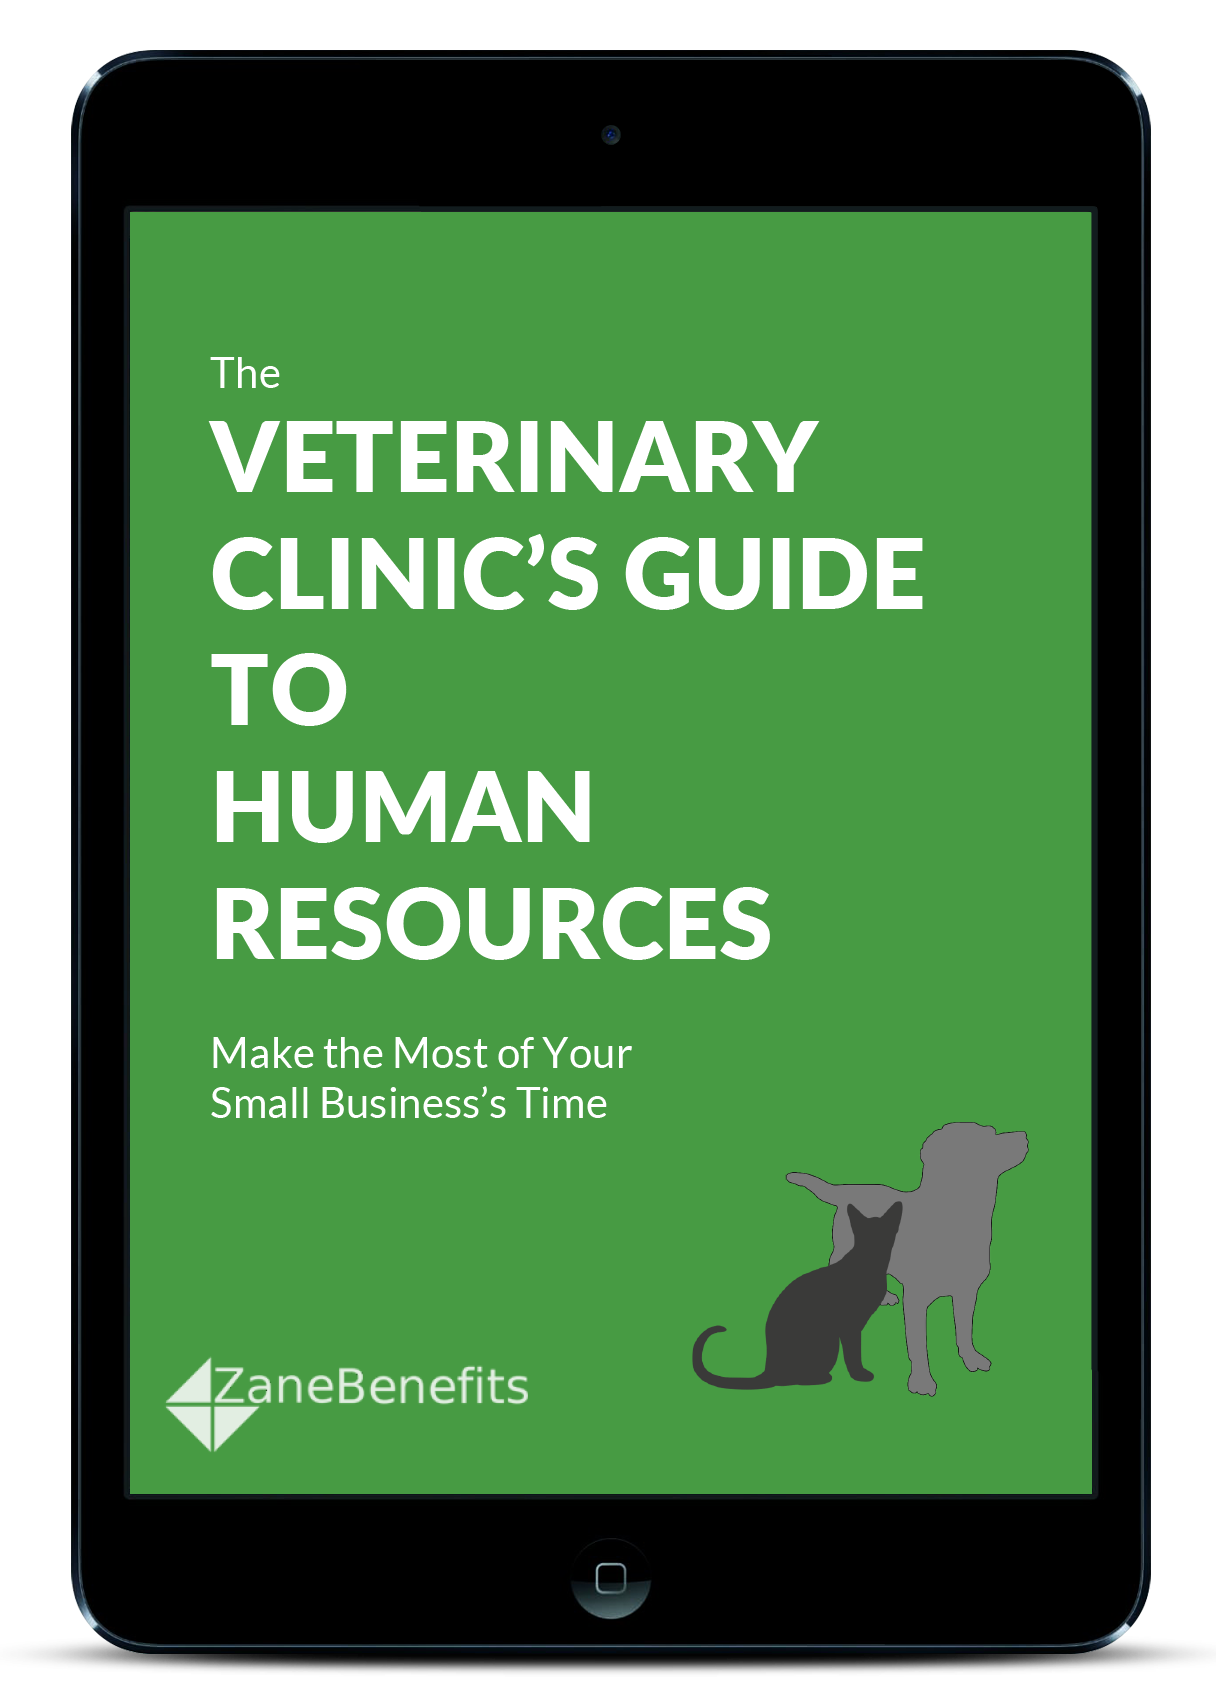 The Veterinary Clinic's Guide to Human Resources